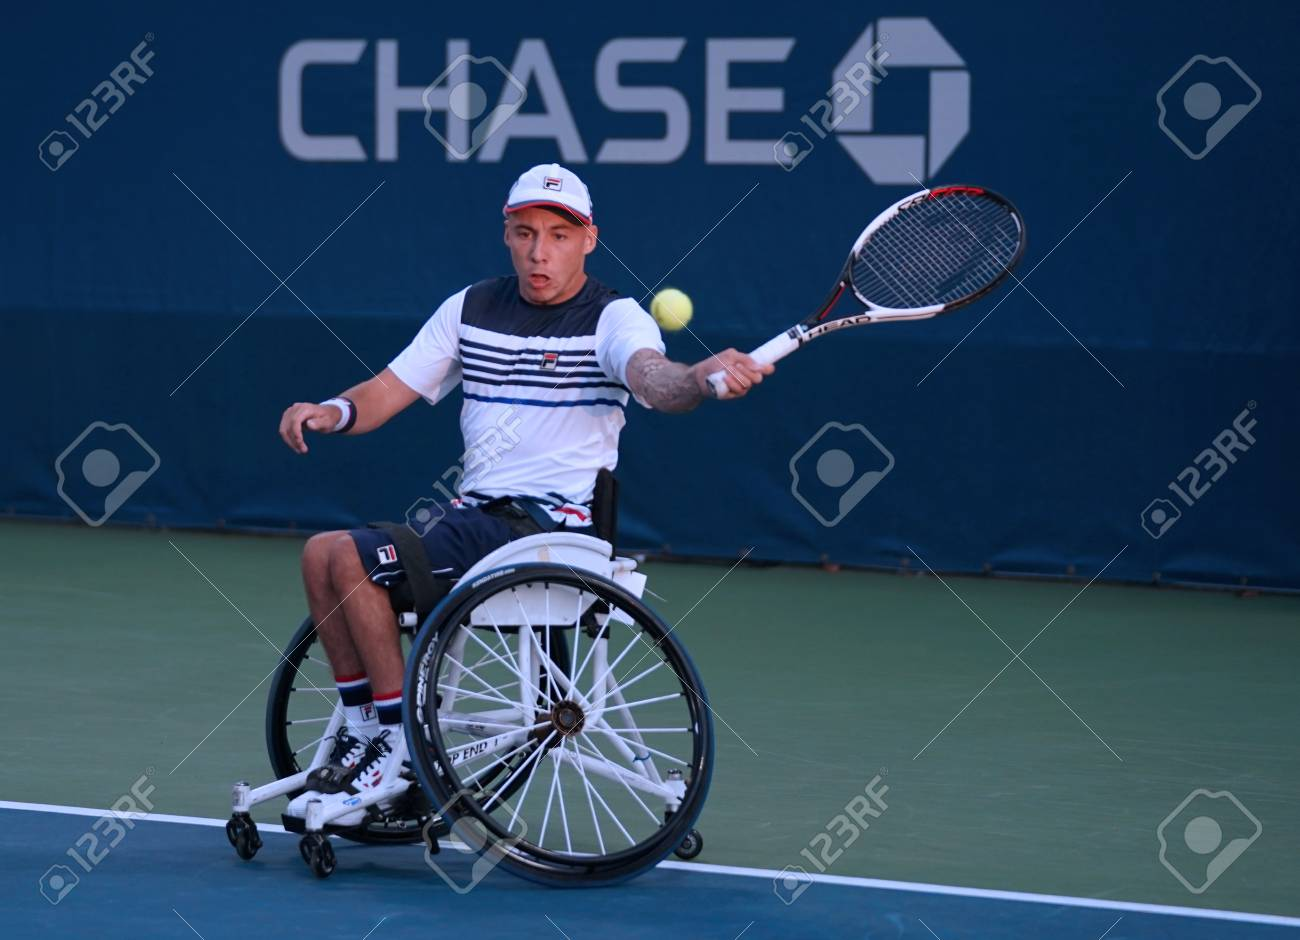 wheelchair quad neutral posture task chair new york september 7 2017 tennis player andrew lapthorne of great britain